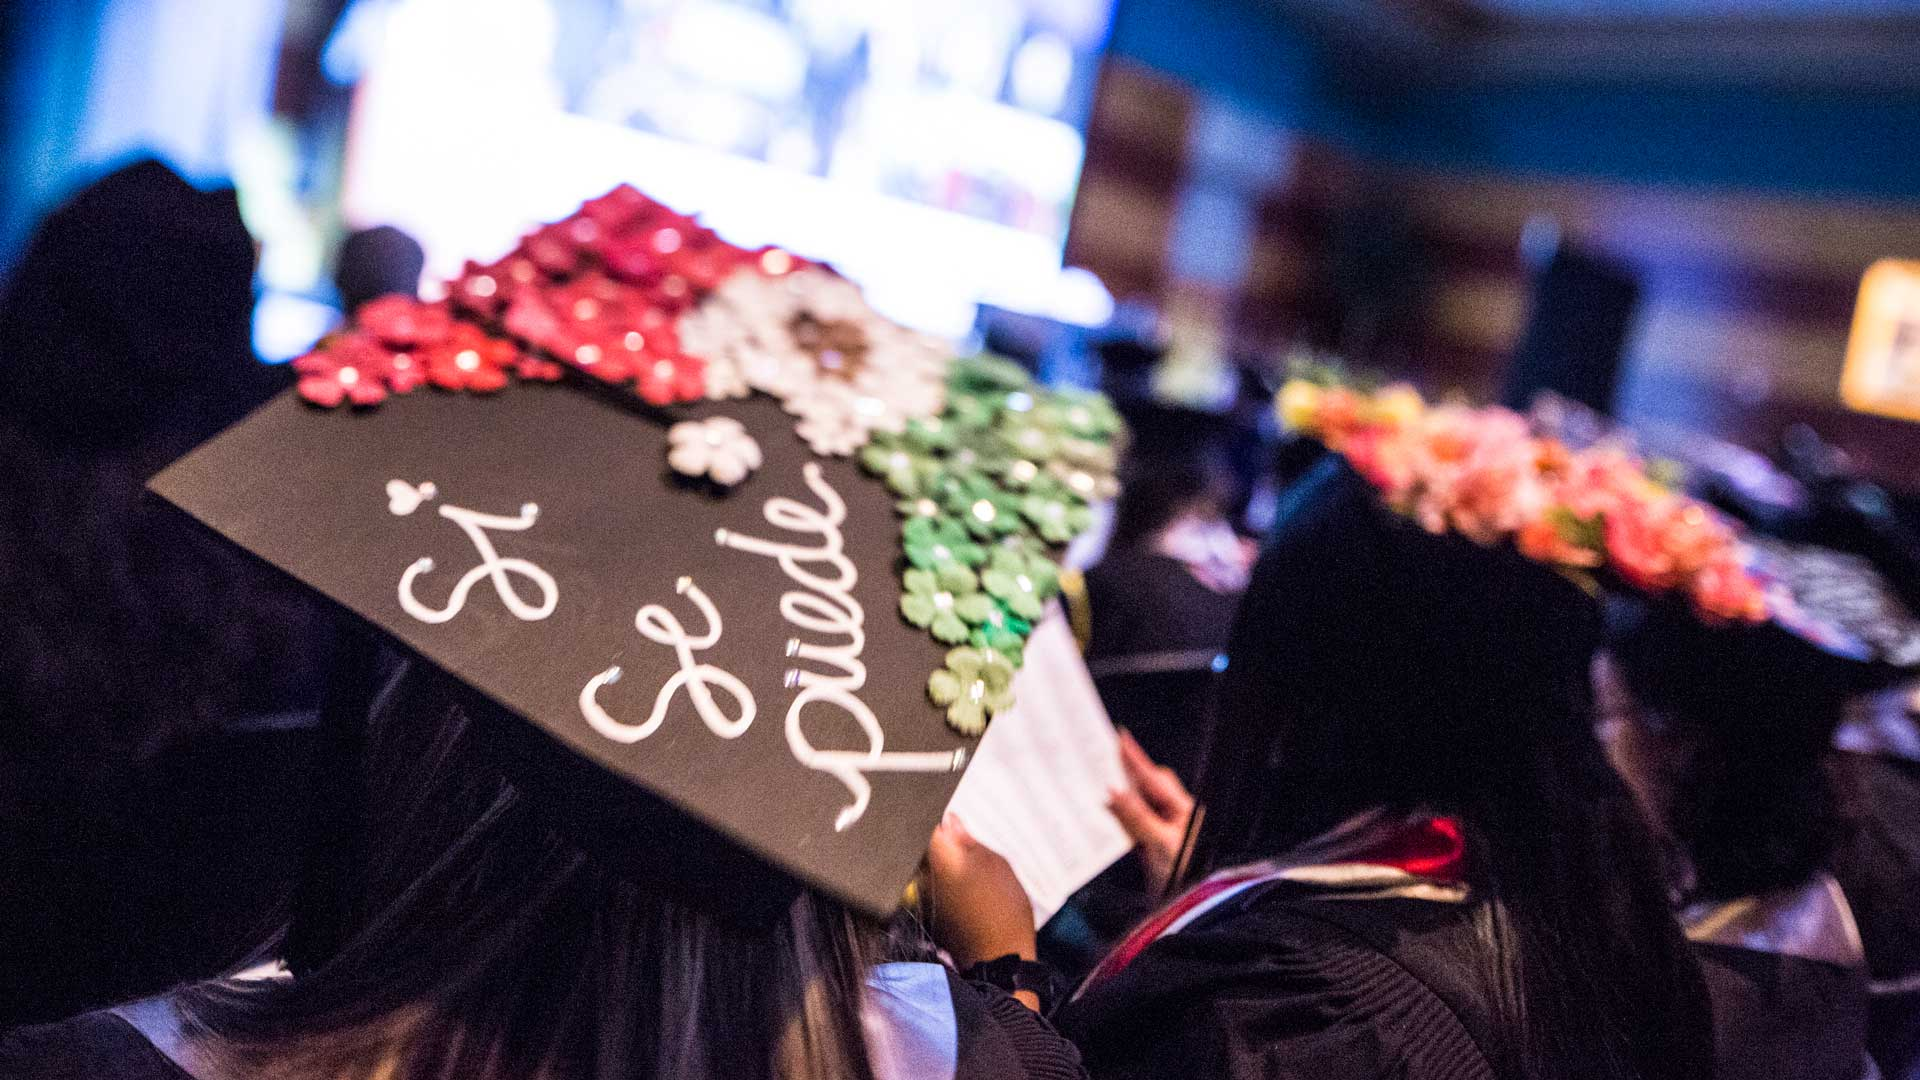 """Students sit in graduation attire at commencement with one mortar board in focus with the words """"Si Se Puede"""" written on it."""